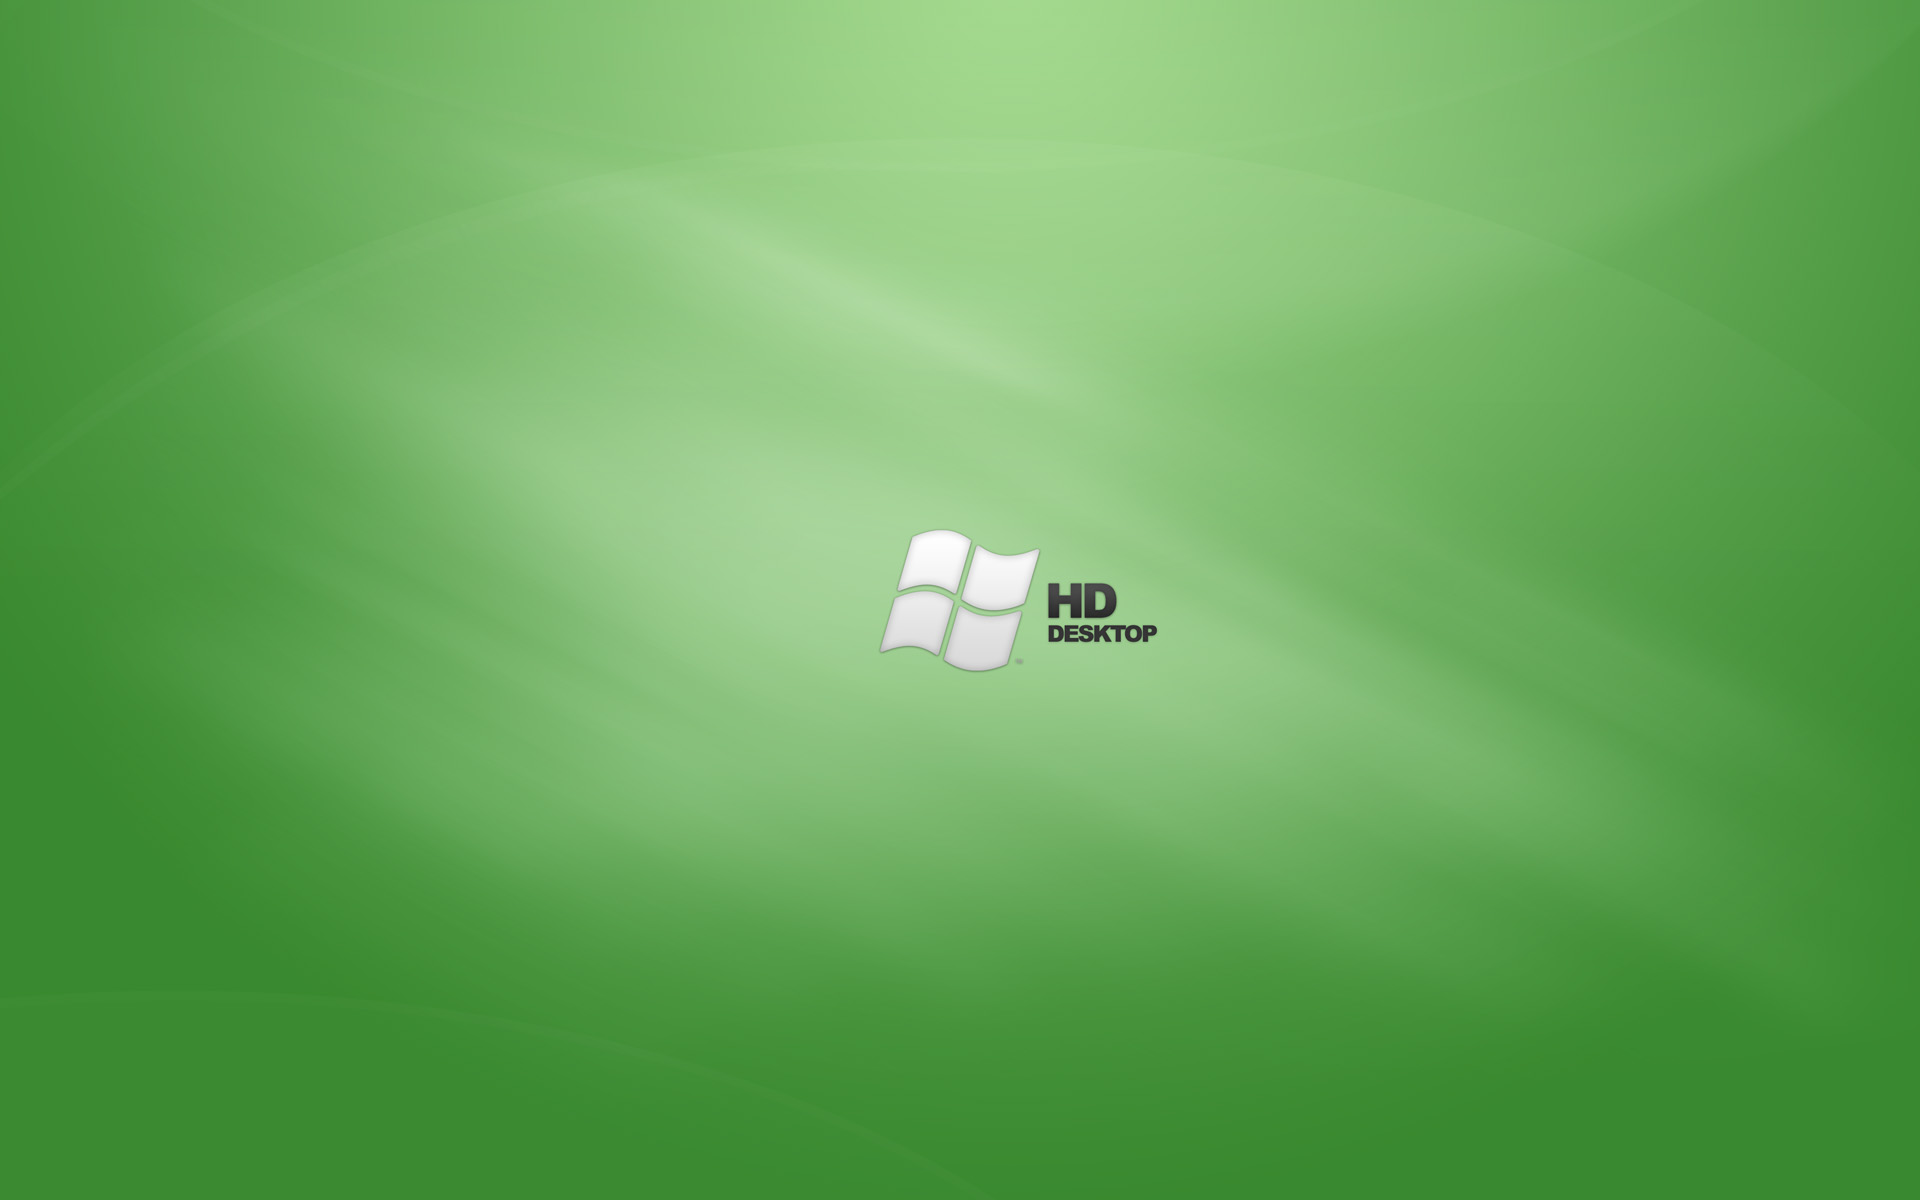 Green HD Desktop wallpapers Green HD Desktop stock photos 1920x1200